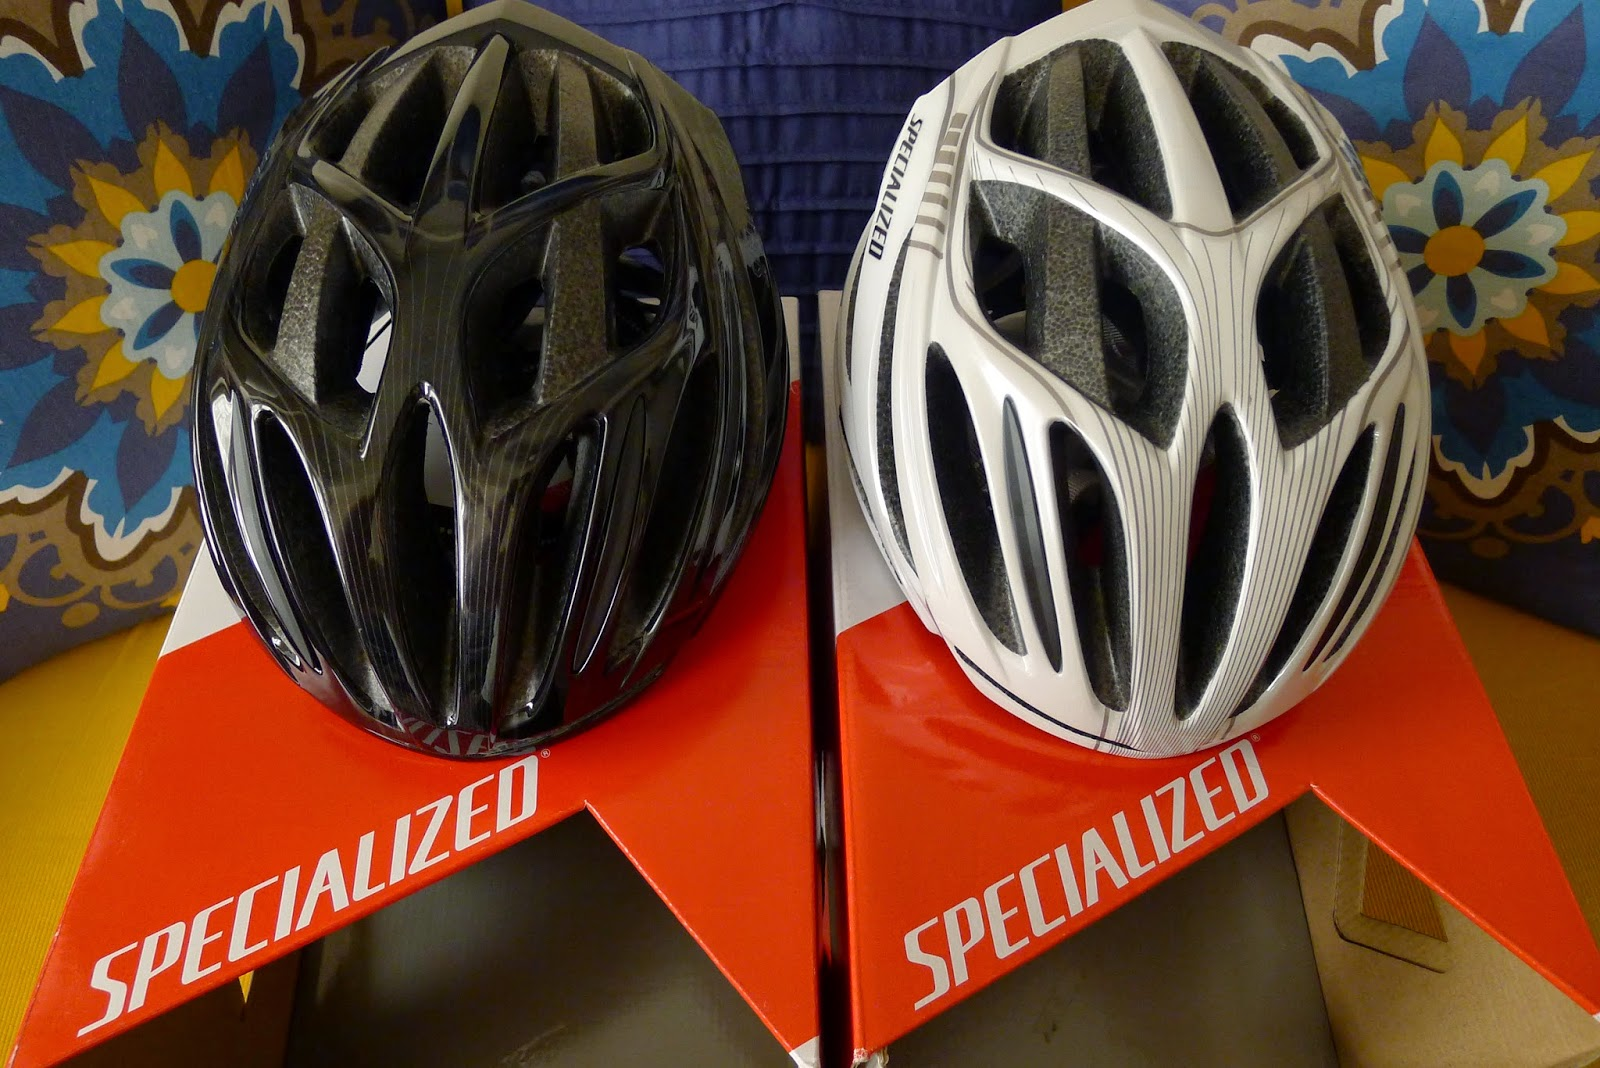 0fae2a148f2 Our Specialized Echelon II Bike Helmets with reflective decals for added  nighttime visibility